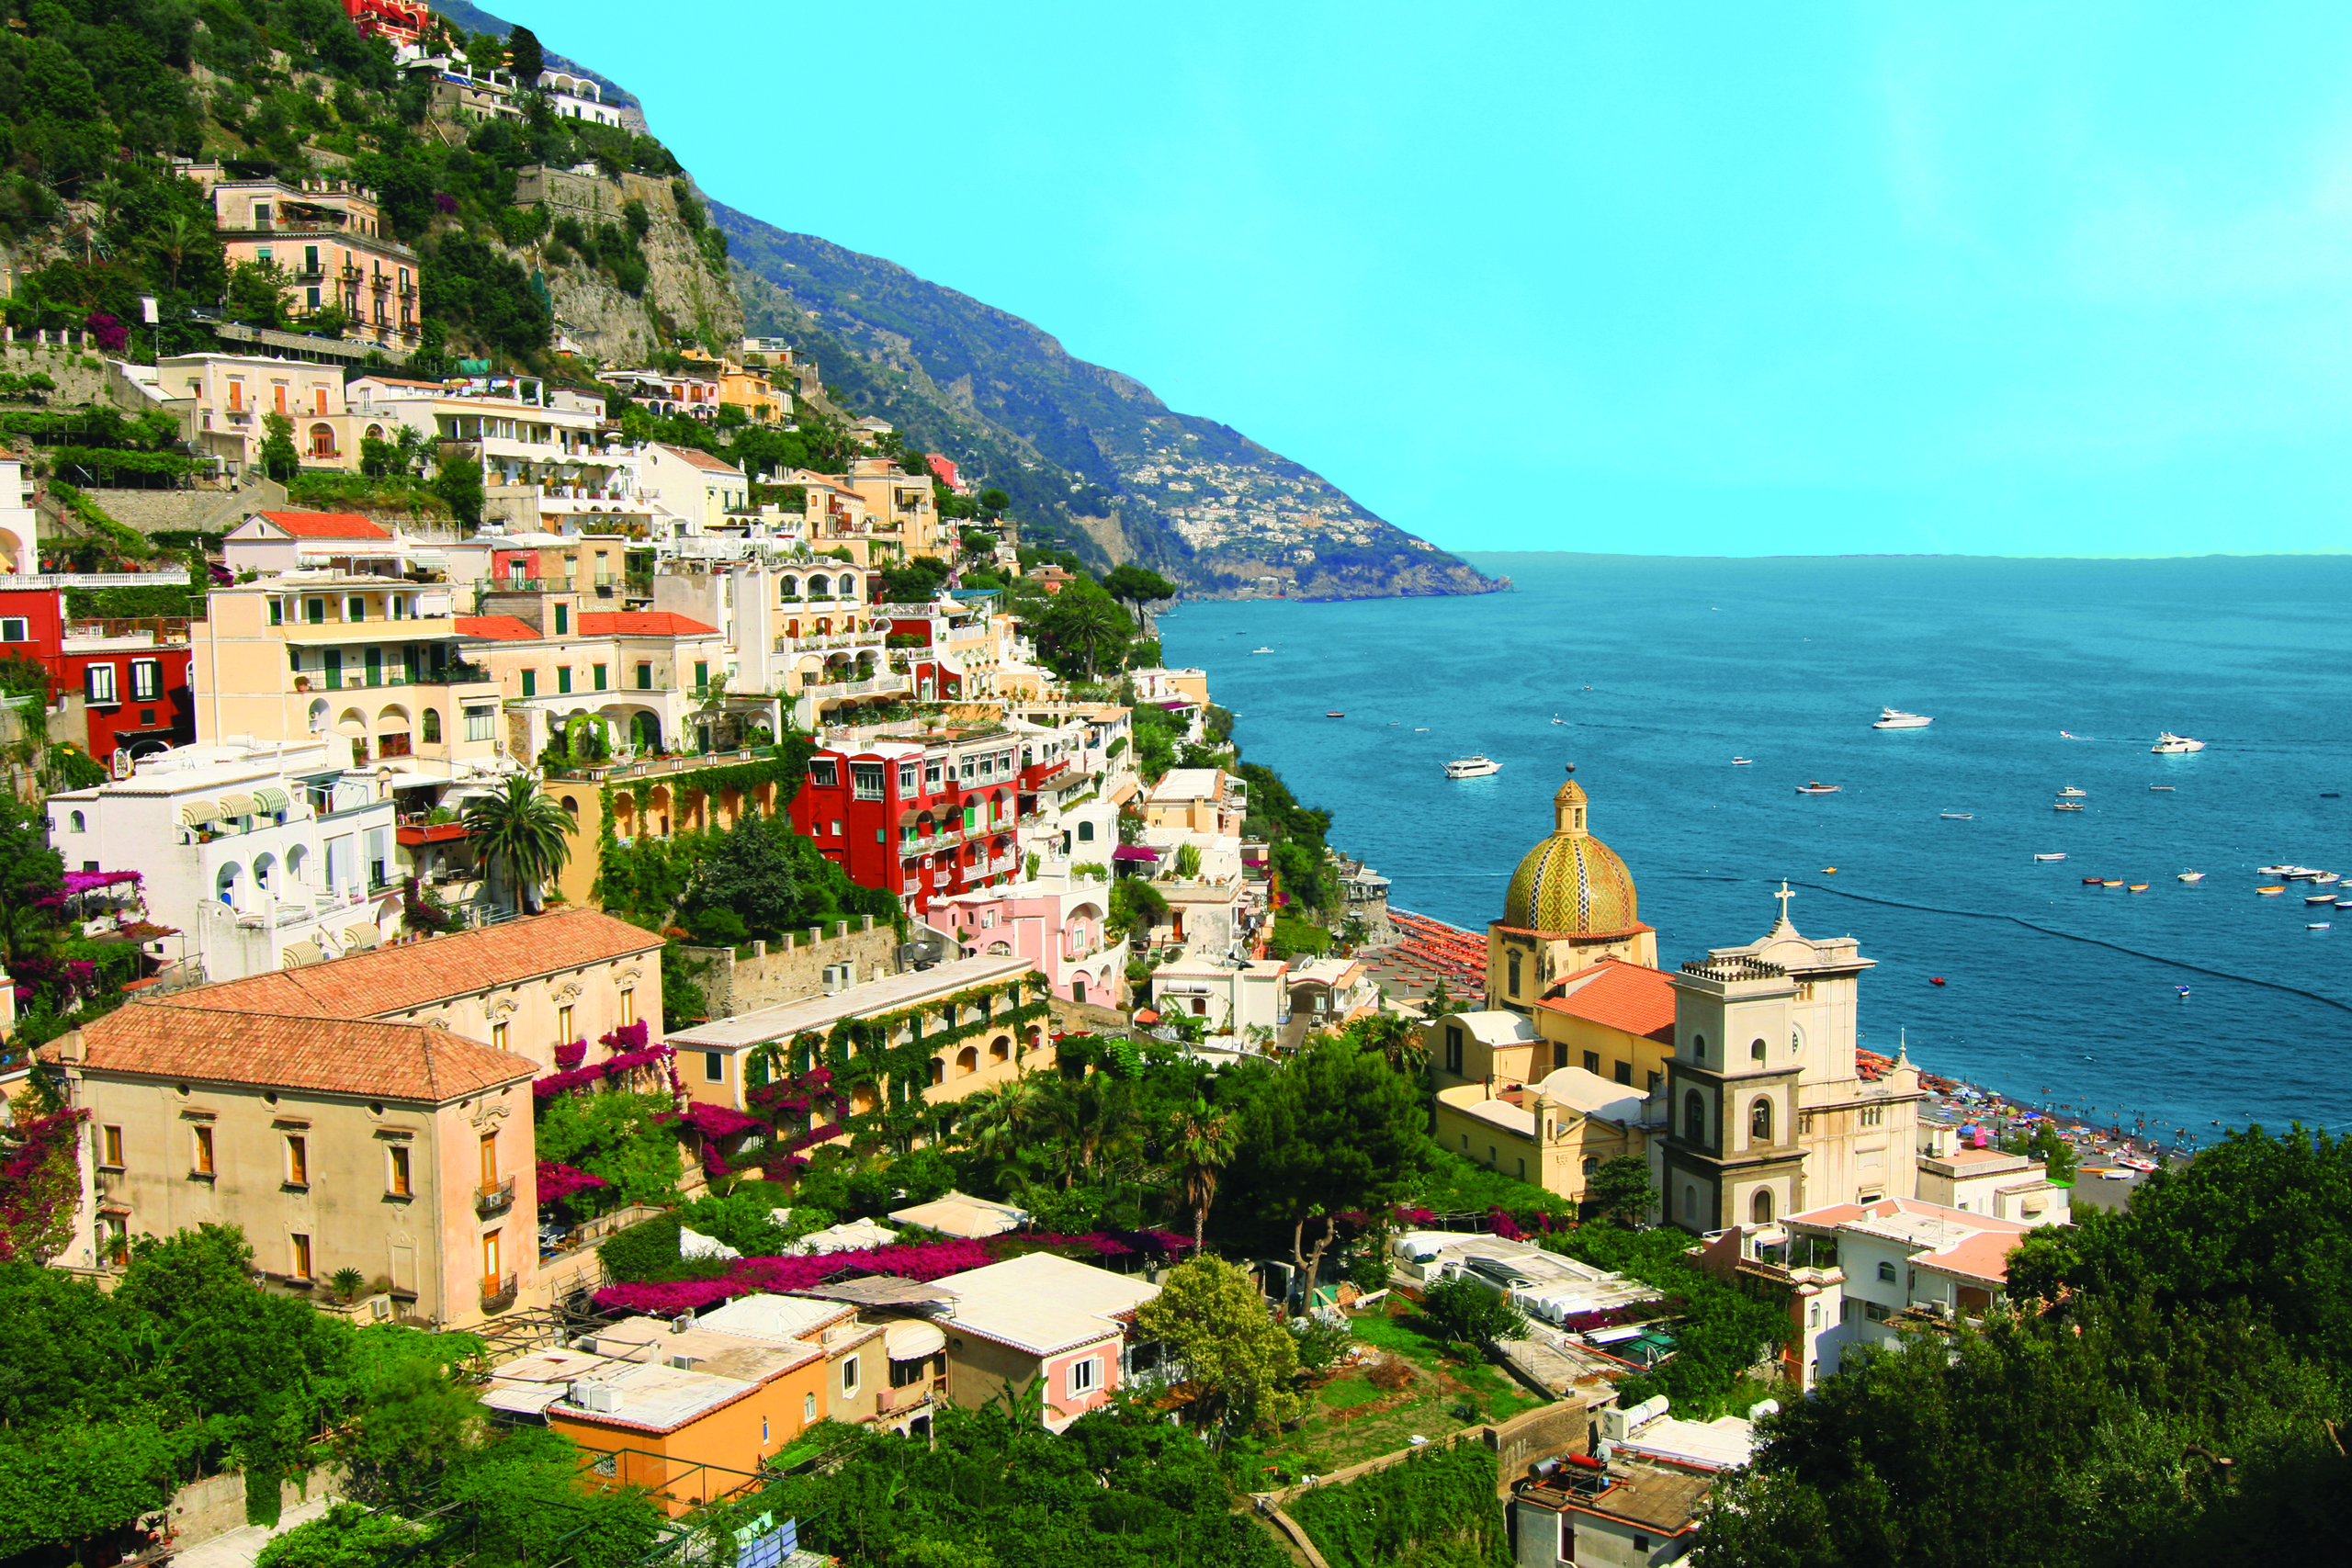 Colorful buildings built into a mountain overlooking the coast.